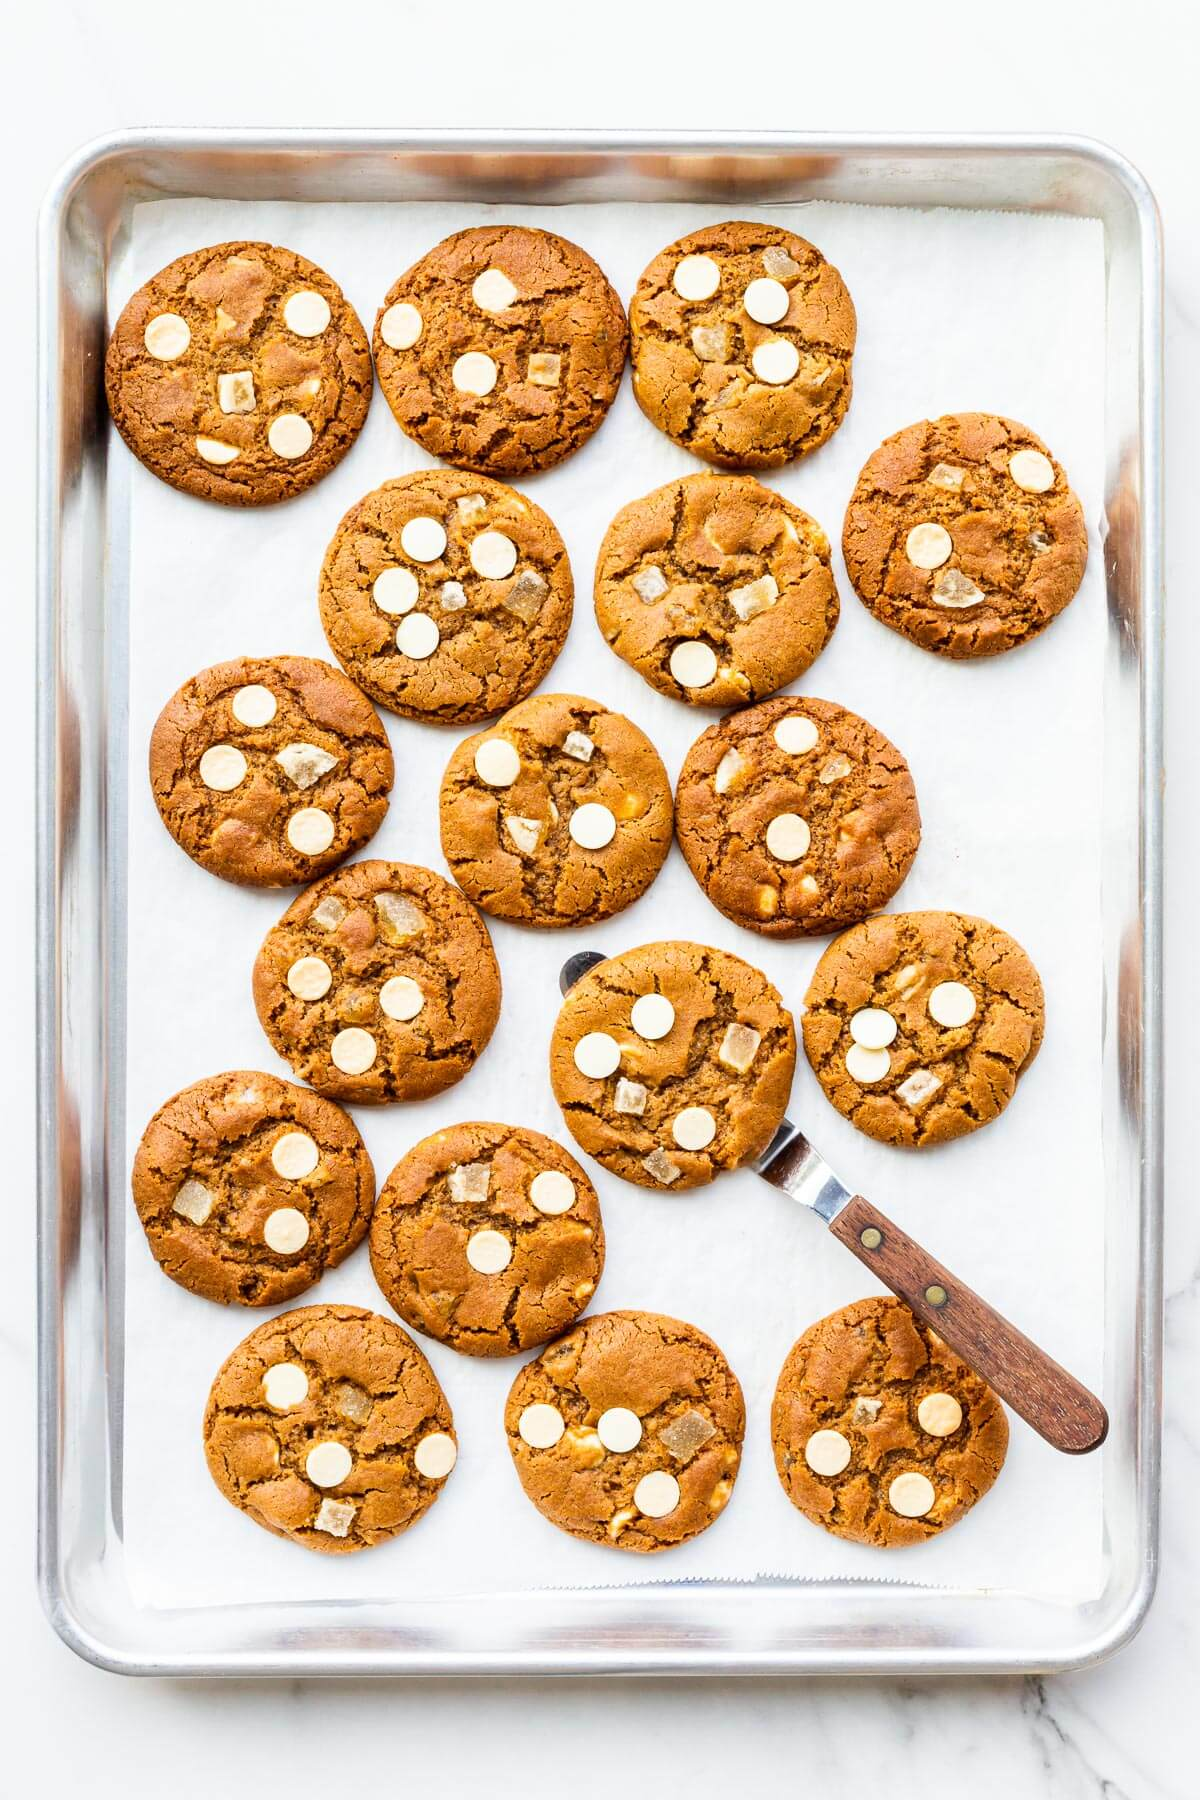 Freshly baked ginger white chocolate cookies cooling slightly on a sheet pan to firm them up before transferring to a cooling rack.